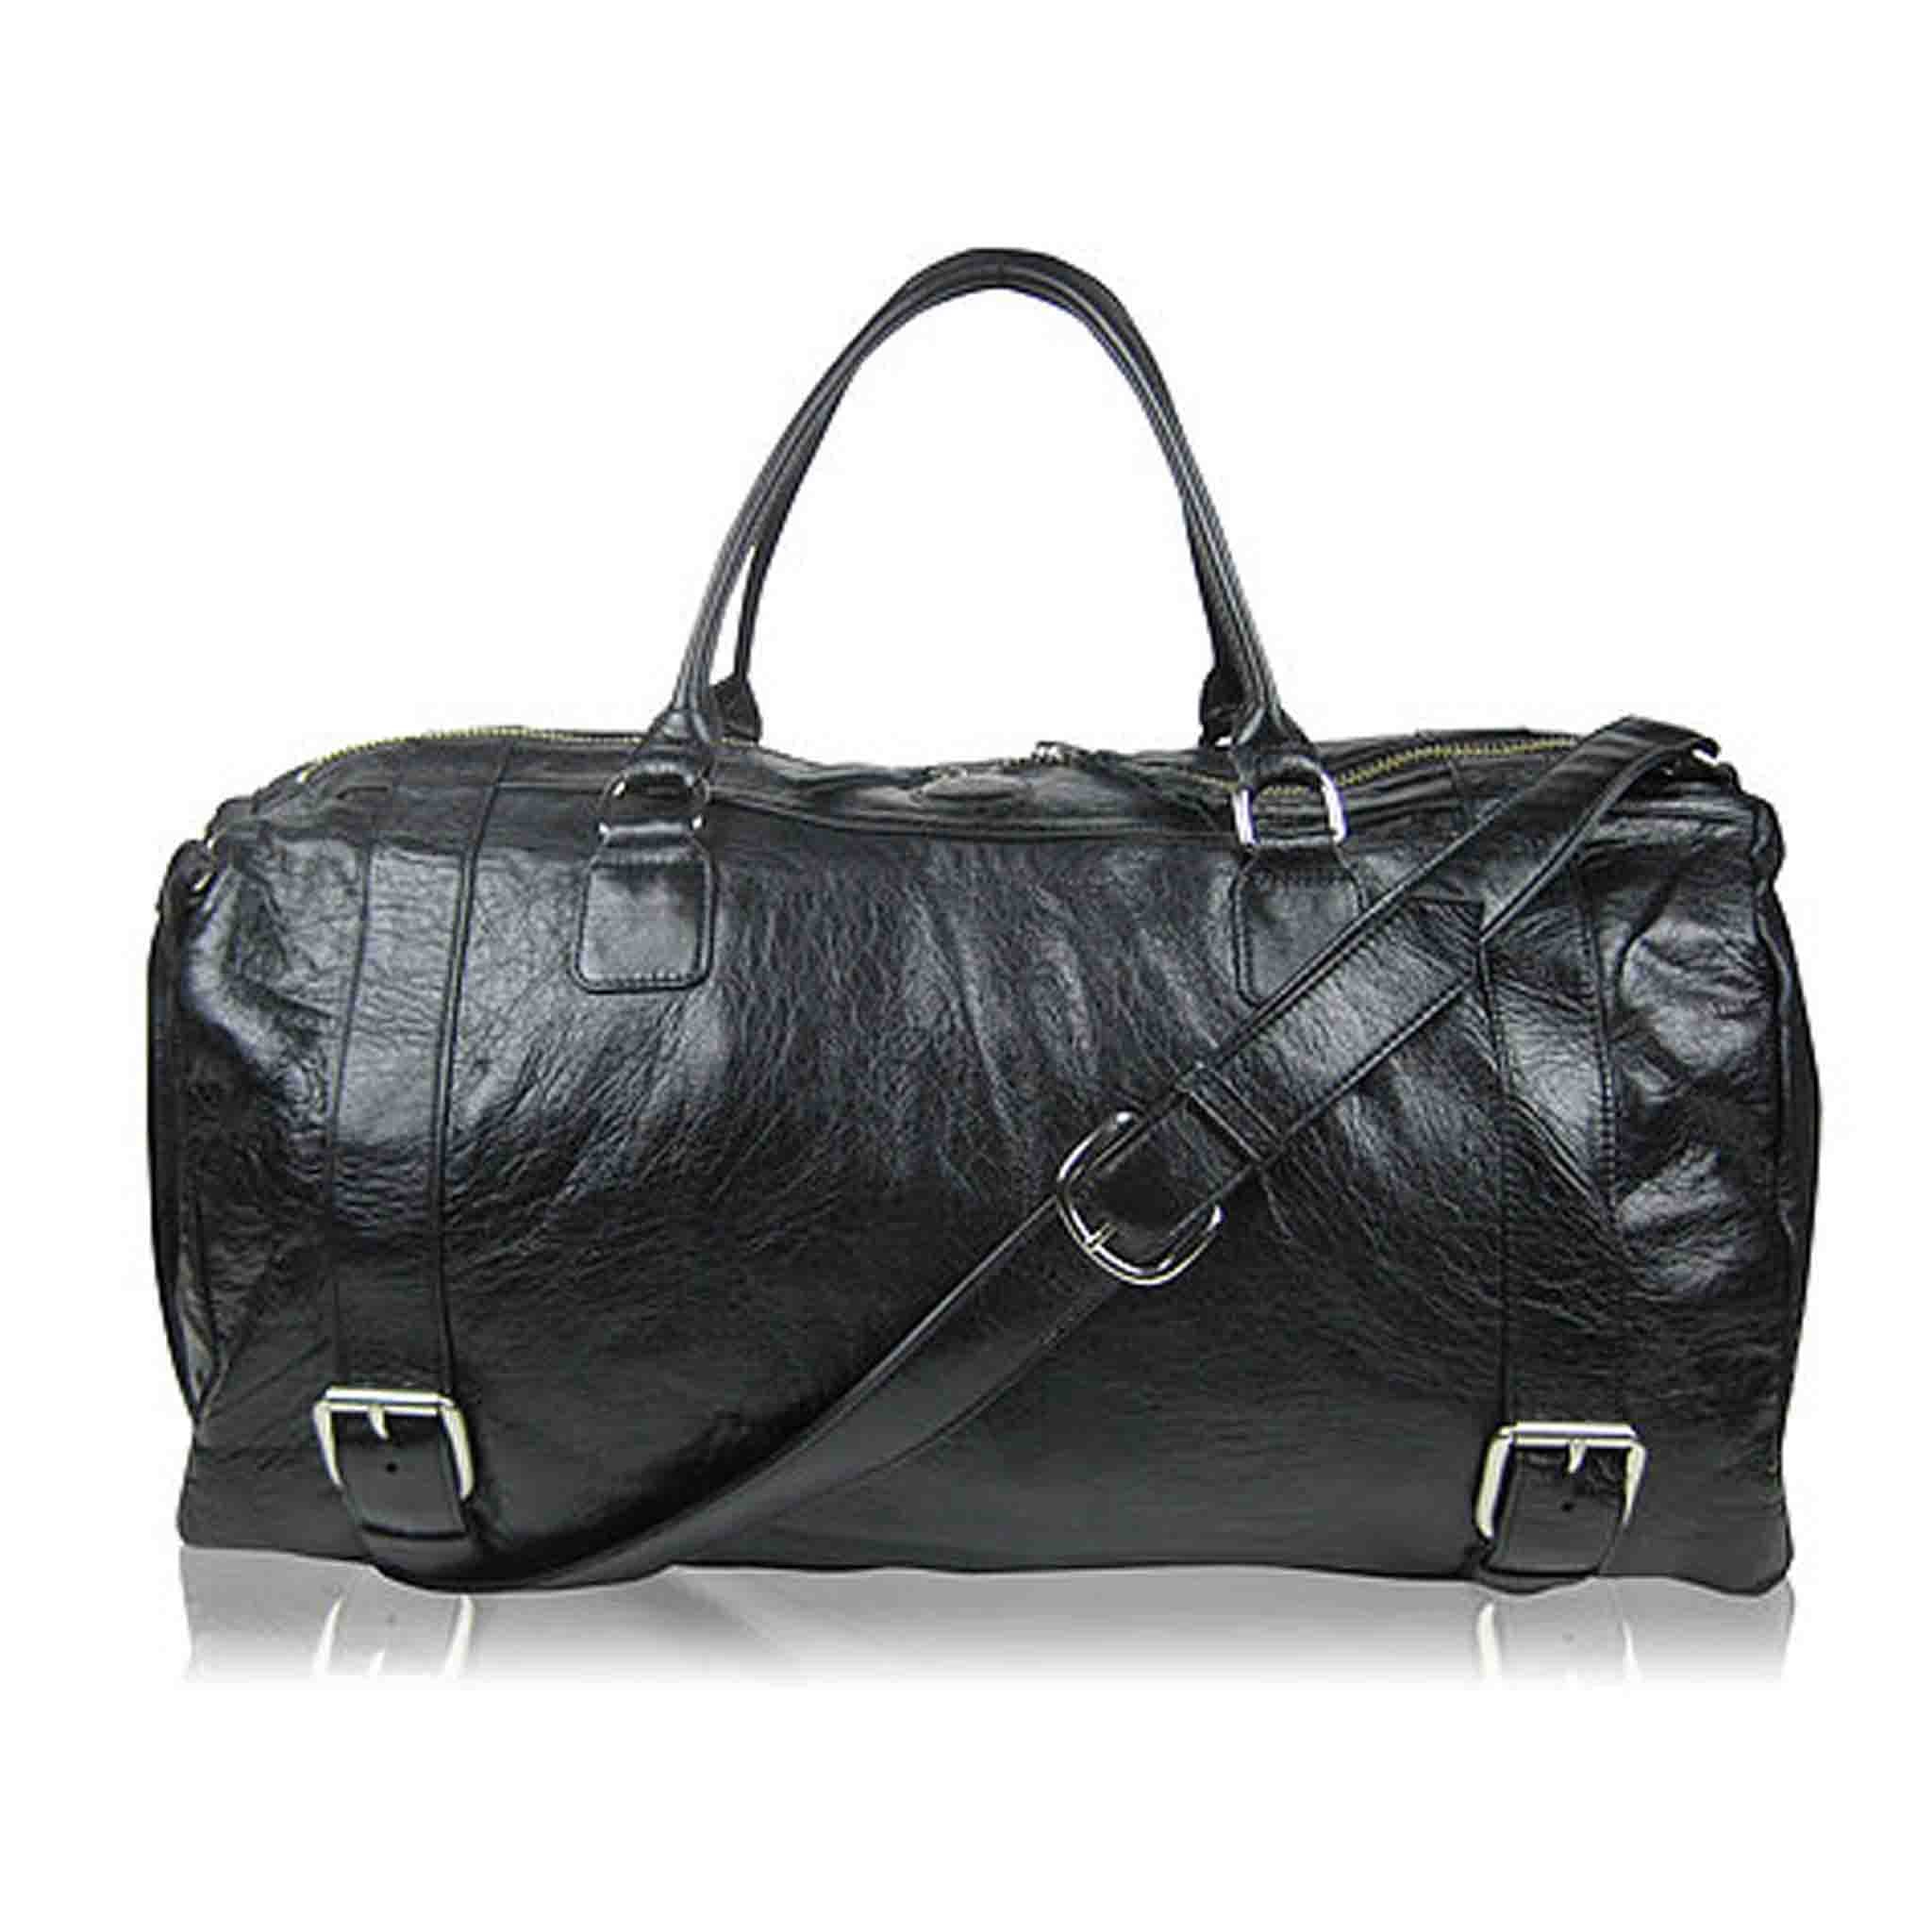 BLACK LEATHER SHOULDER MEN'S BAG STIEN WEEKENDER